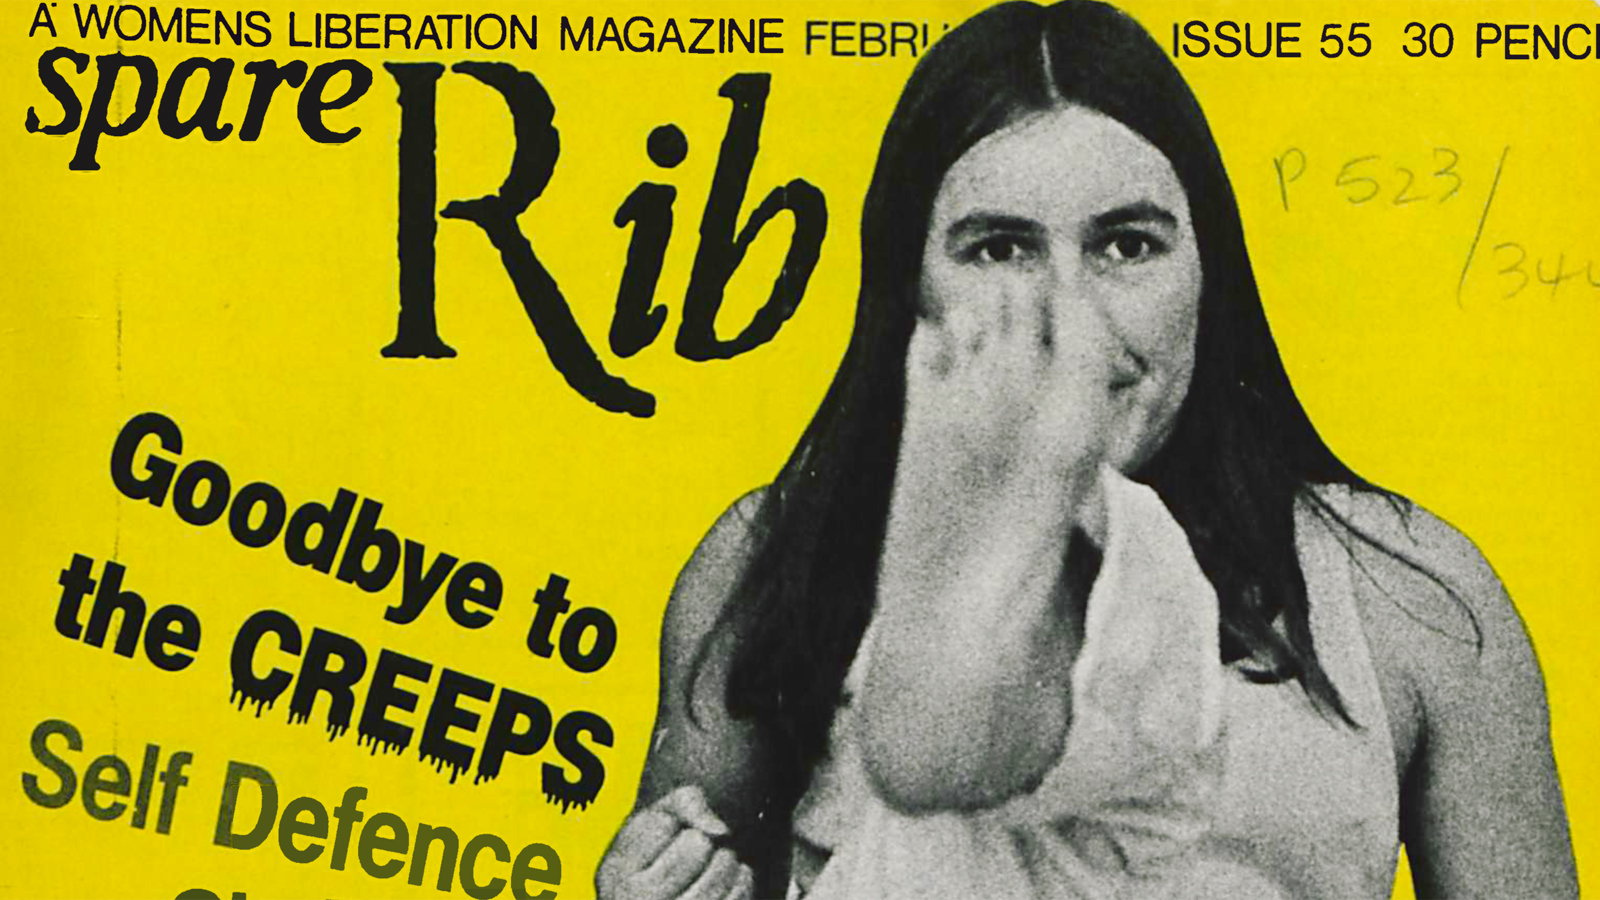 Spare Rib and the underground press